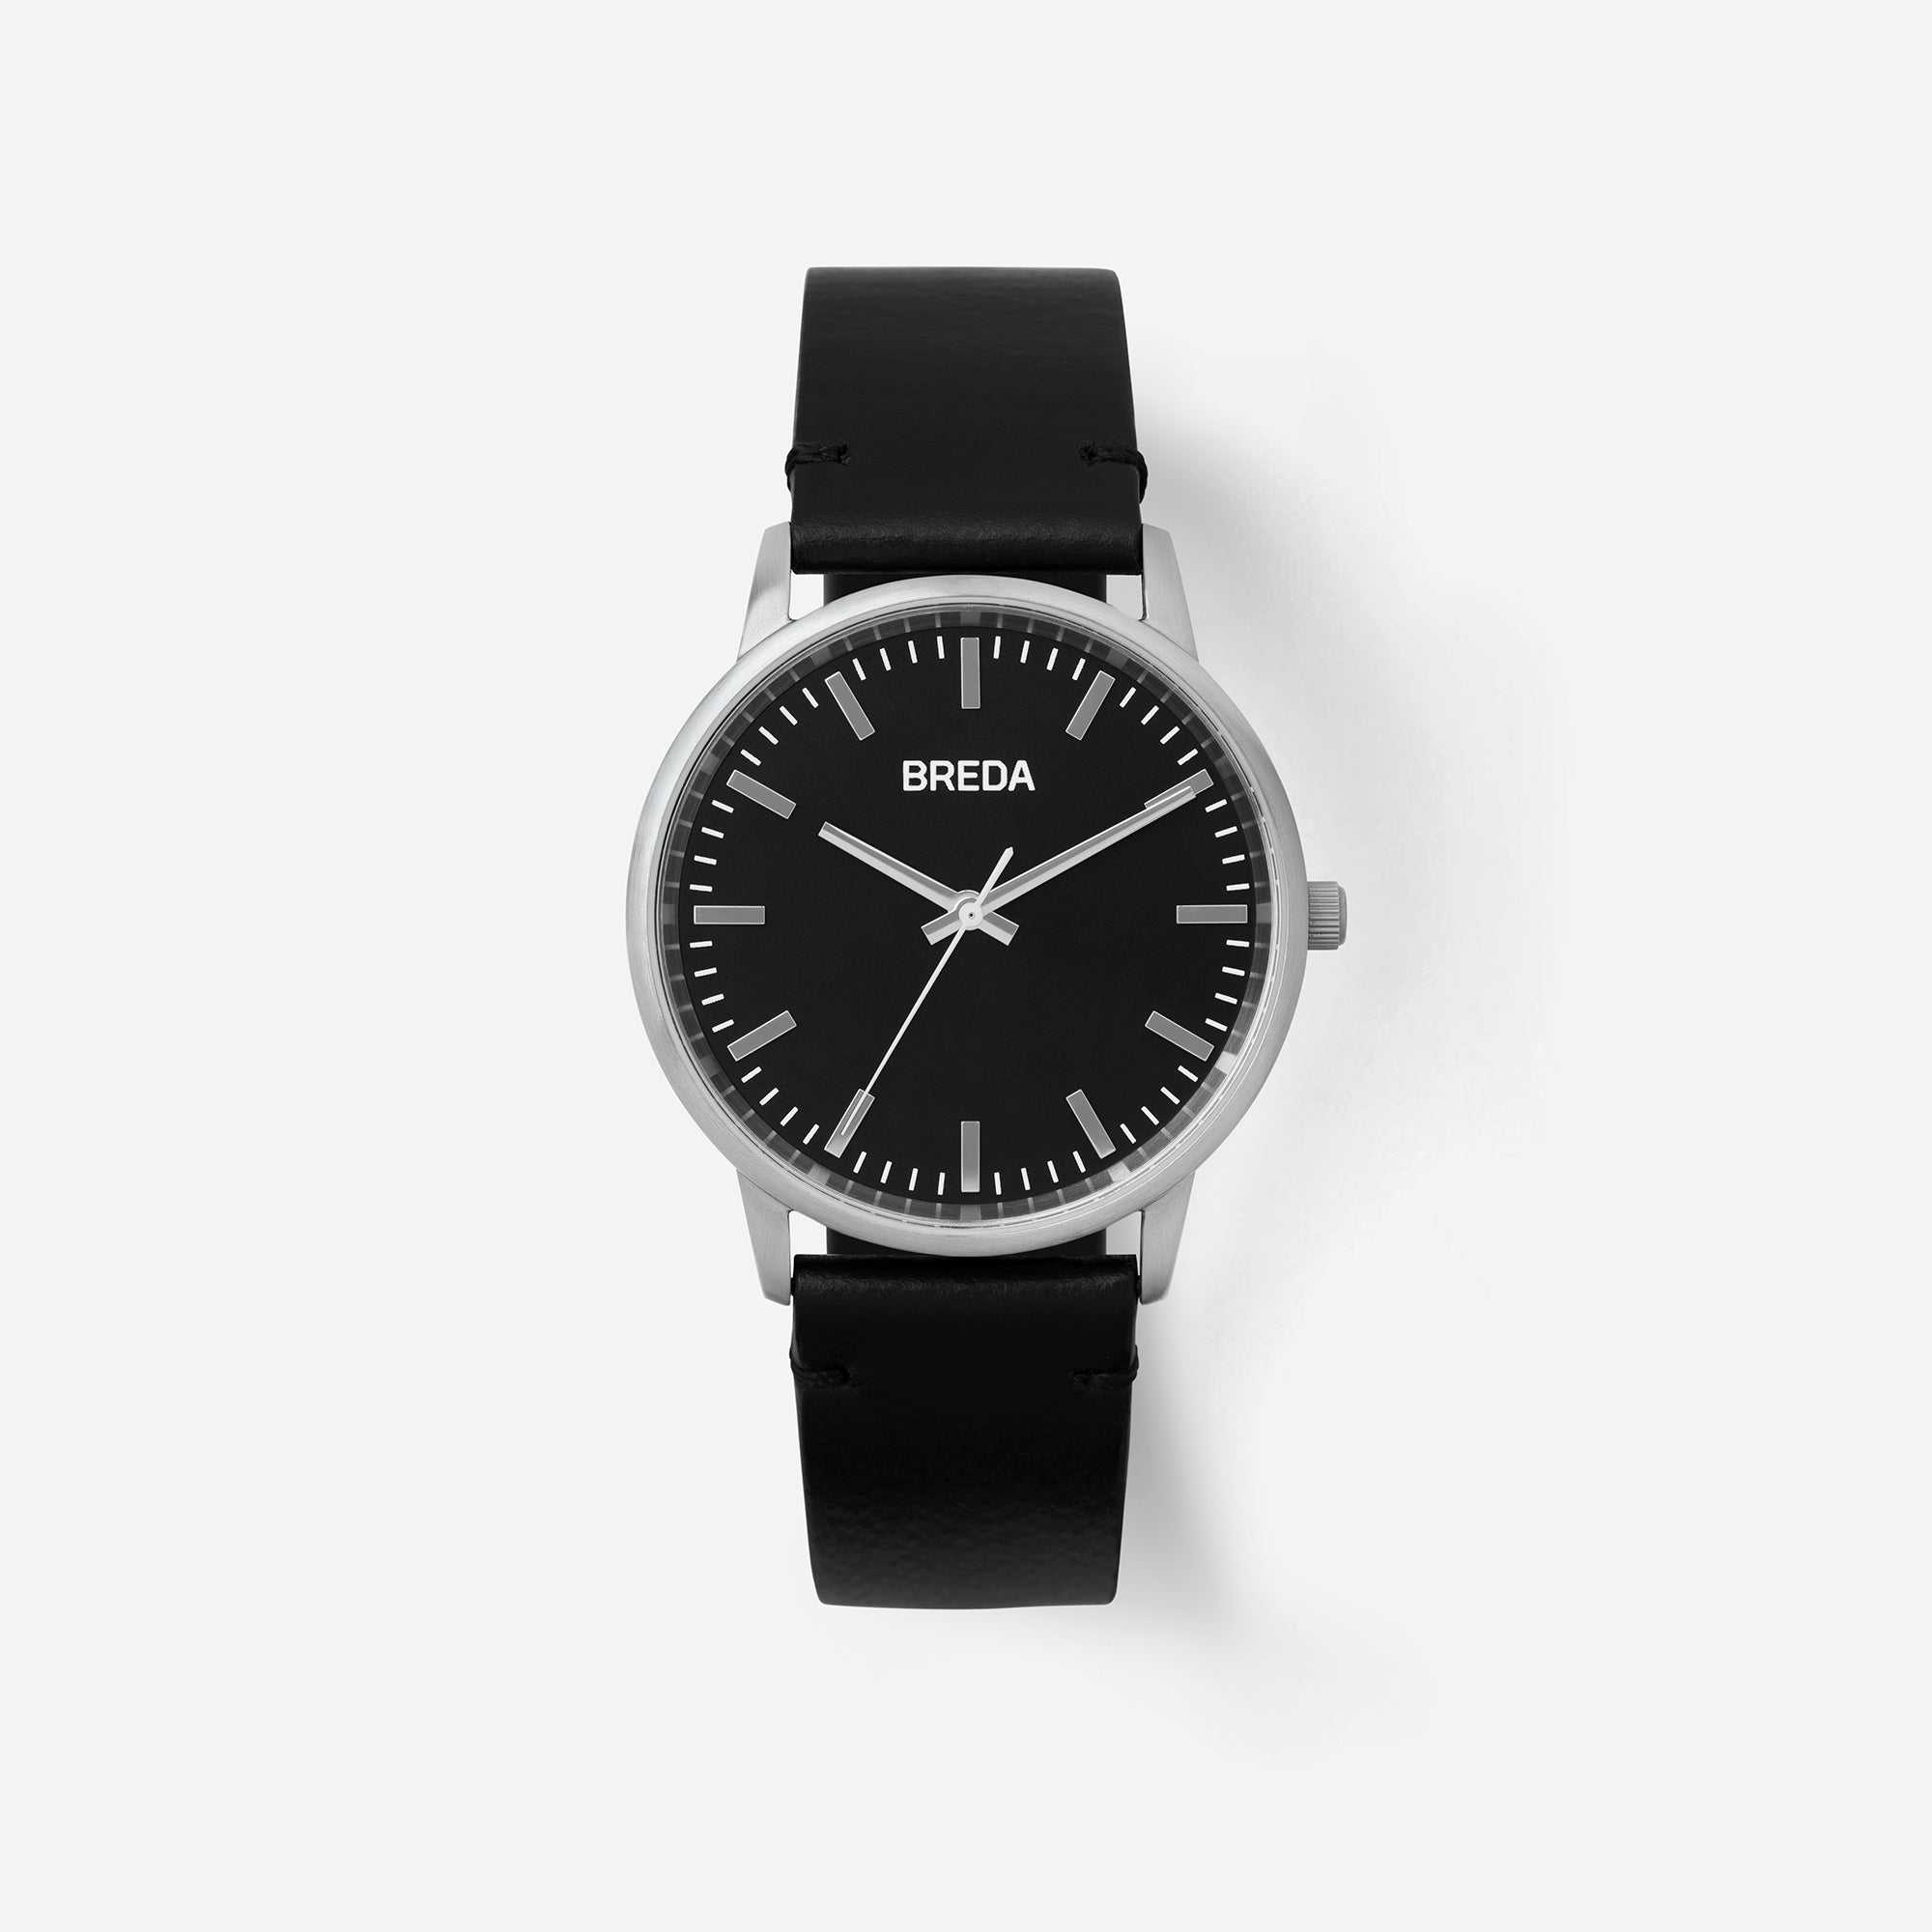 //cdn.shopify.com/s/files/1/0879/6650/products/breda-zapf-1697k-silver-black-leather-watch-front_1024x1024.jpg?v=1543248342